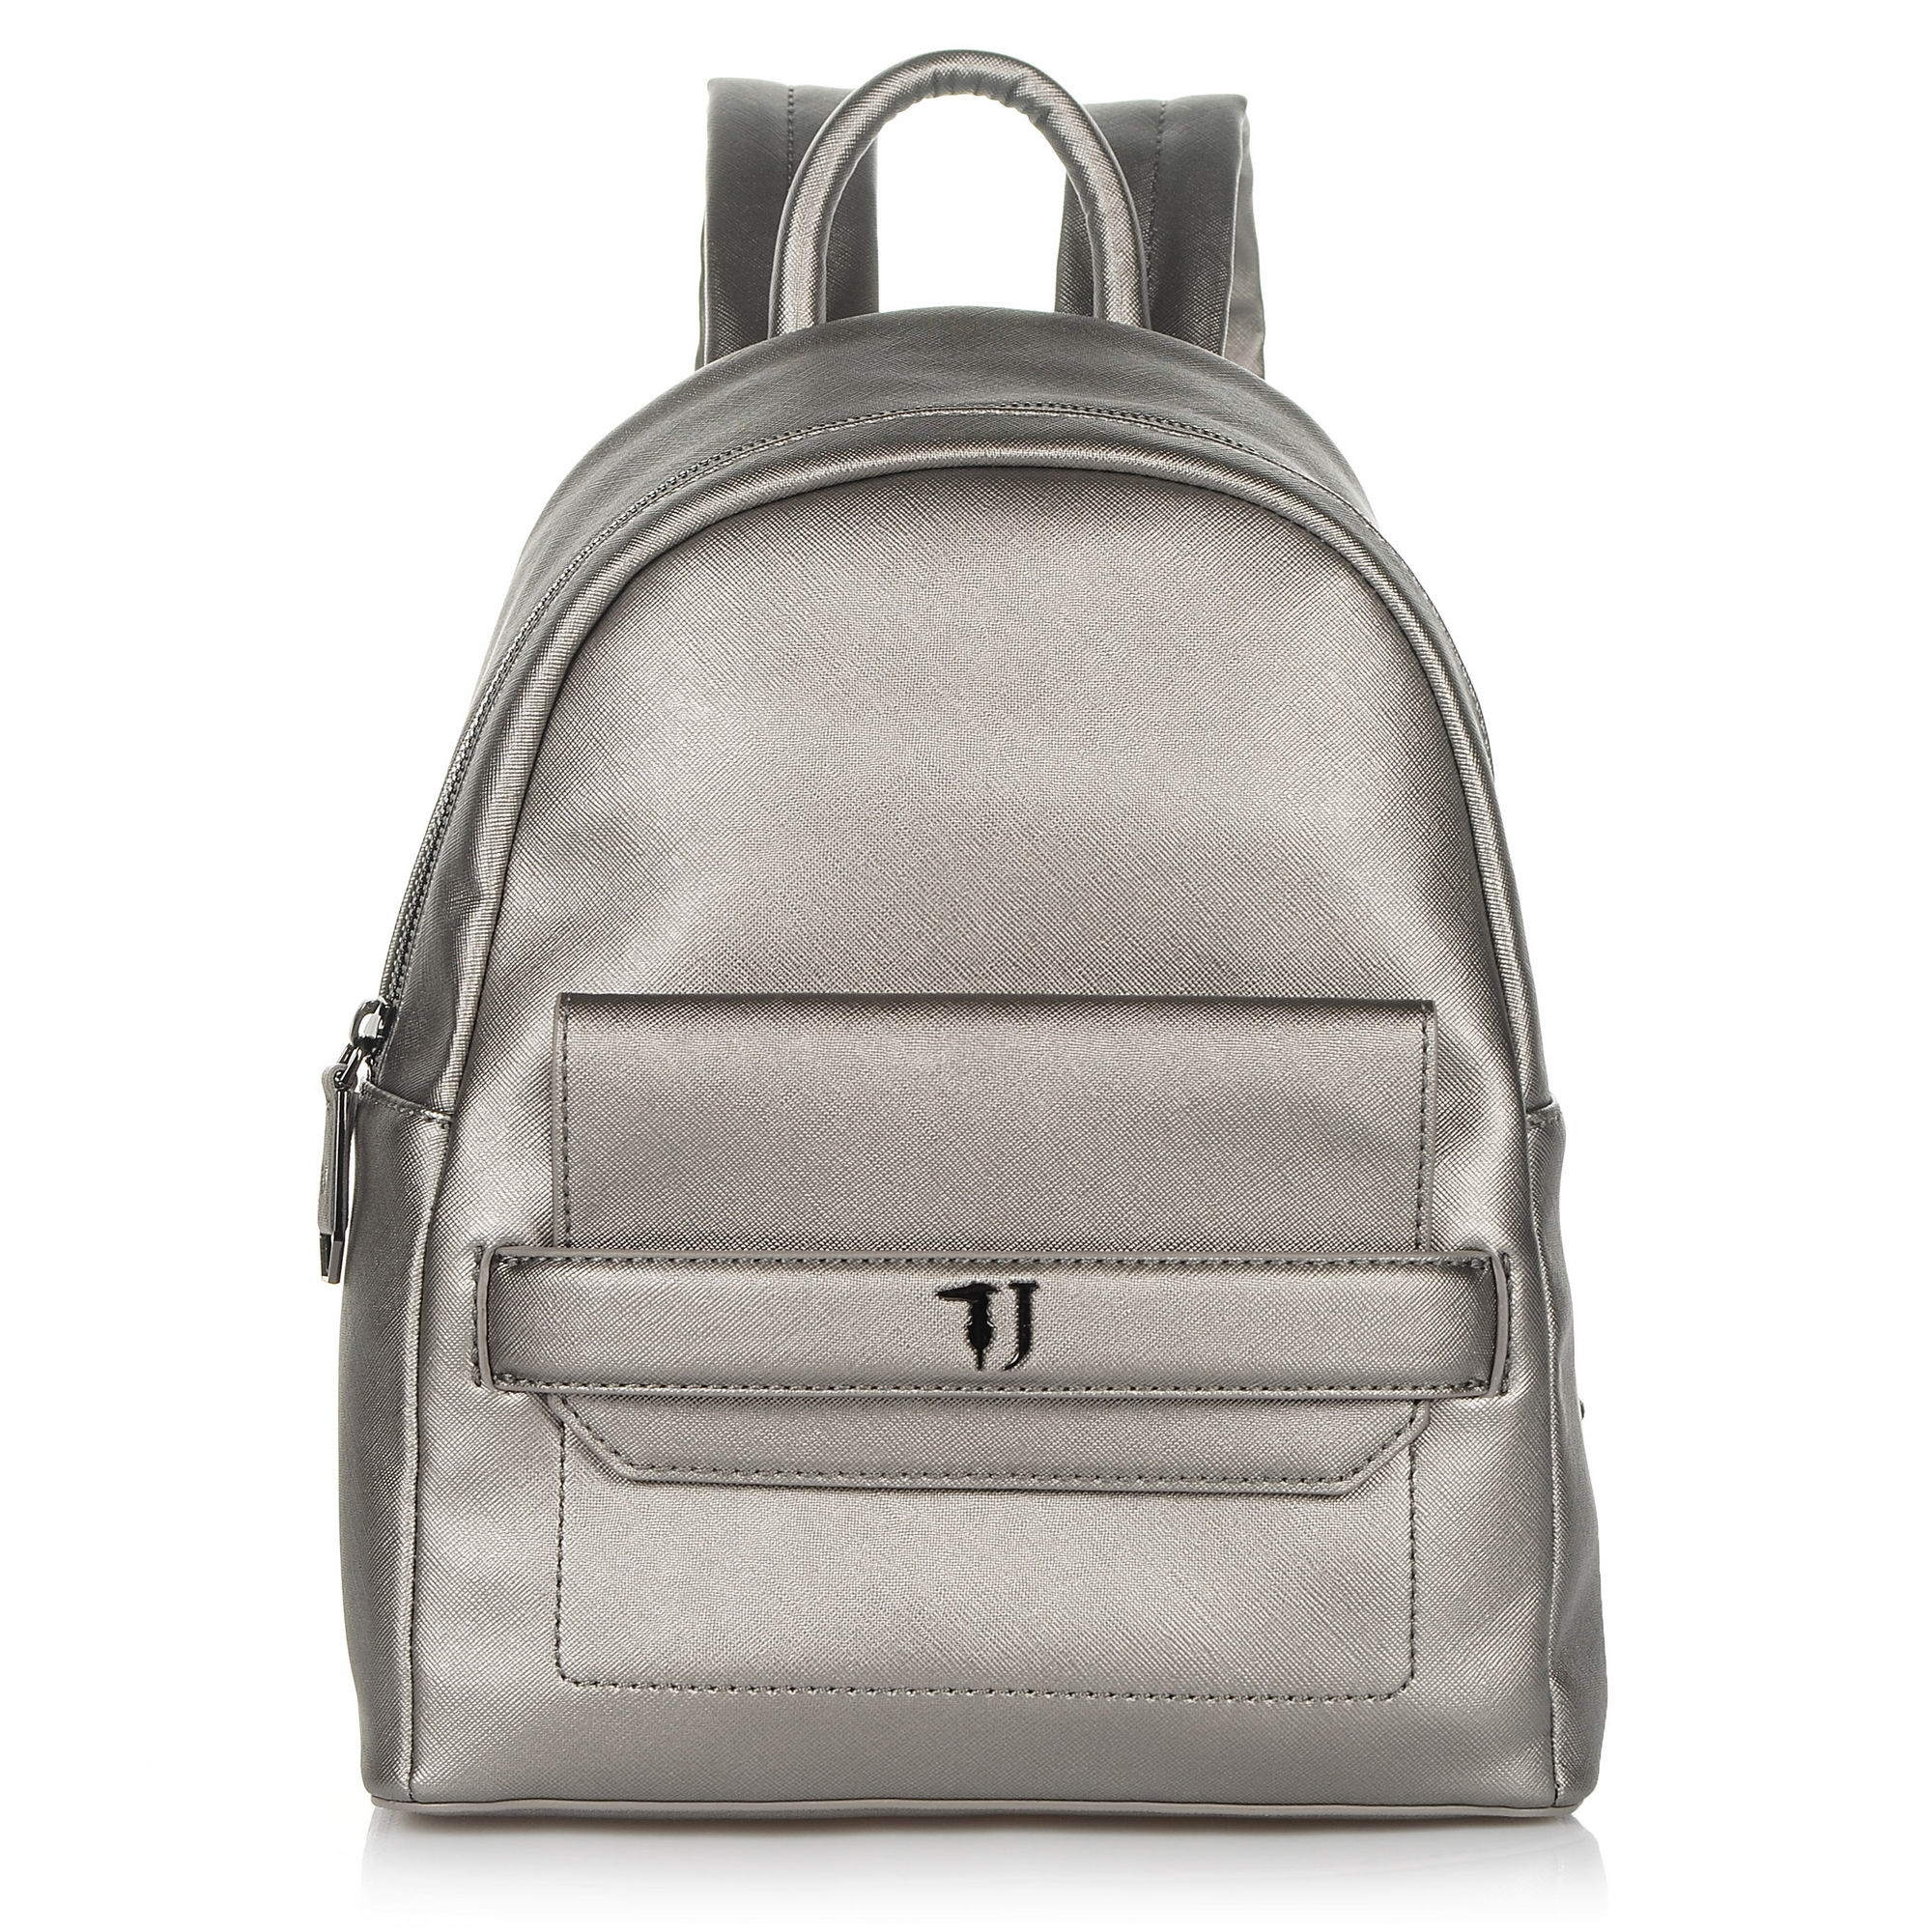 Σακίδιο Πλάτης Trussardi Jeans Paprica Backpack Ecoleather 75Β00557